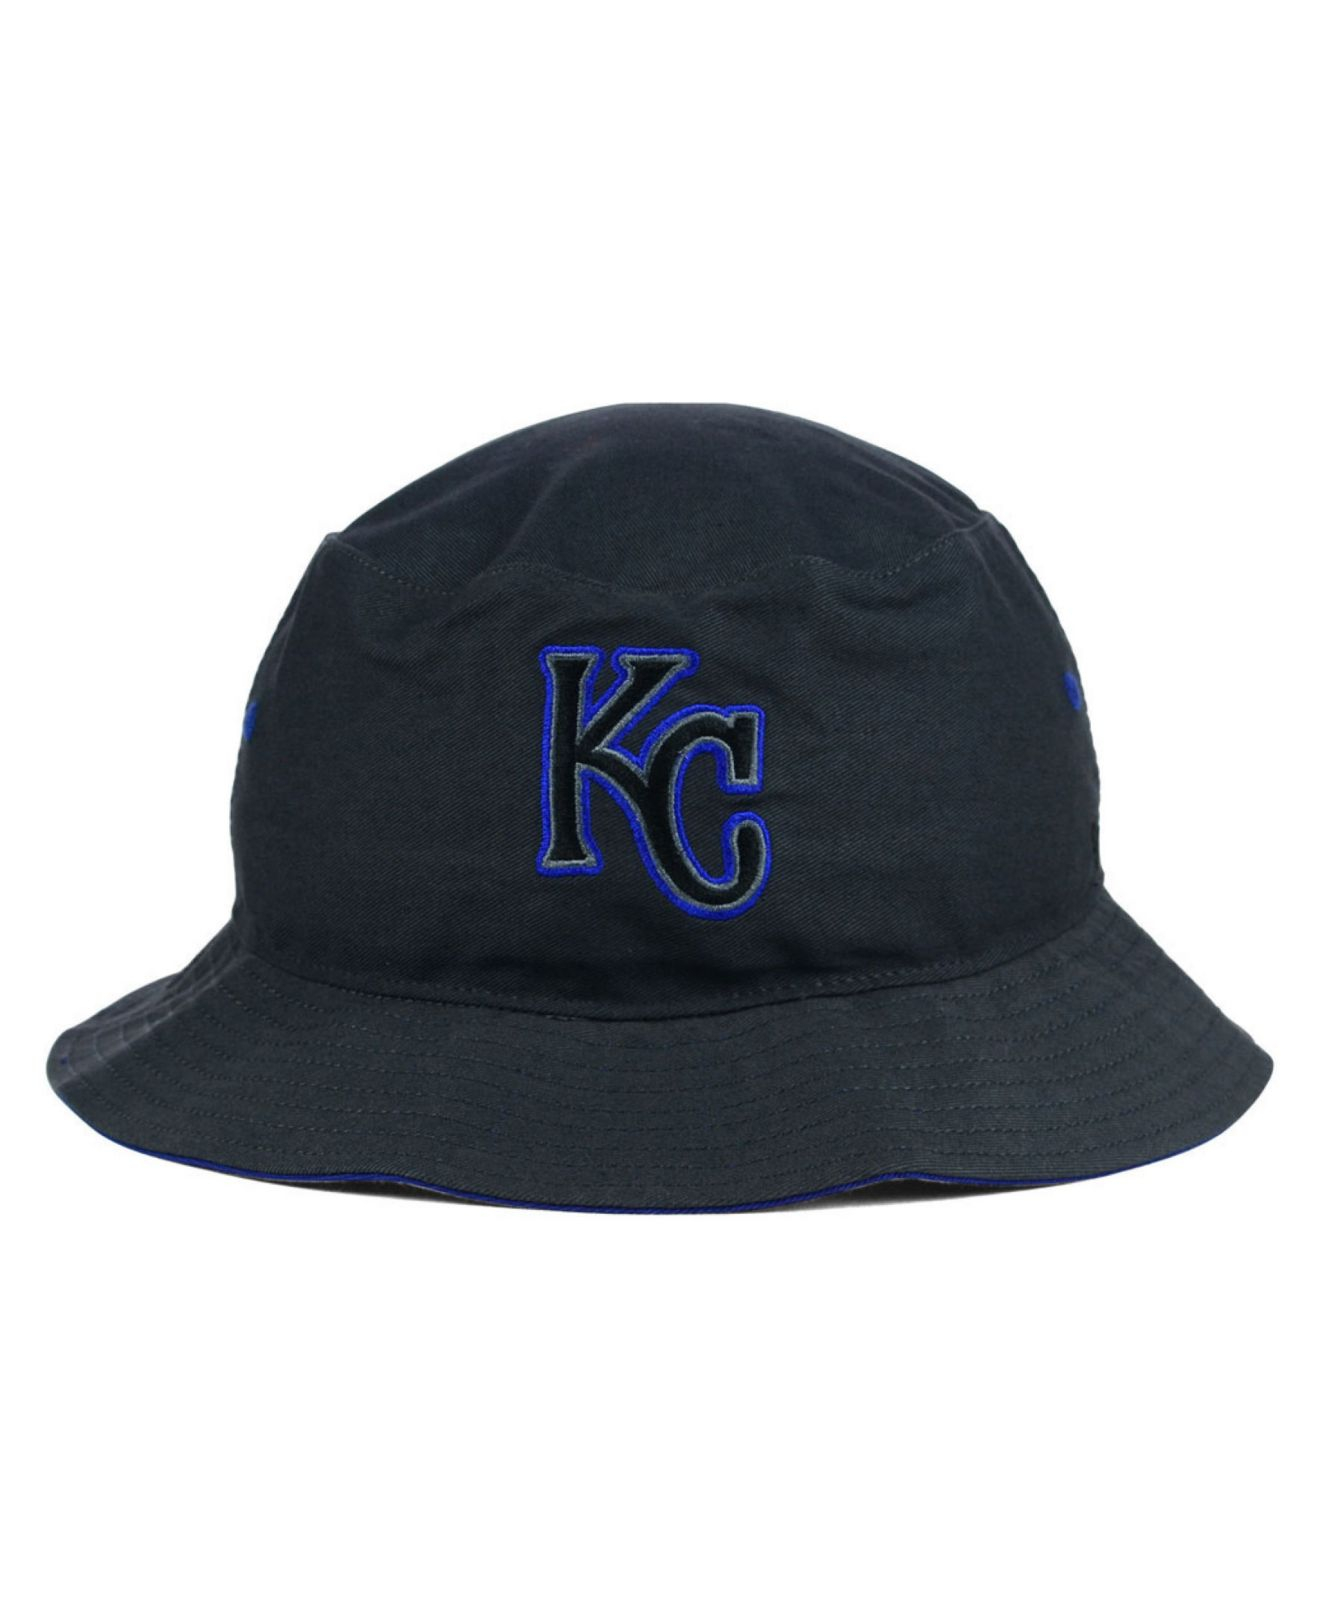 official photos 2cdcf c5475 ... coupon for lyst 47 brand kansas city royals turbo bucket hat in gray  58d72 971ad